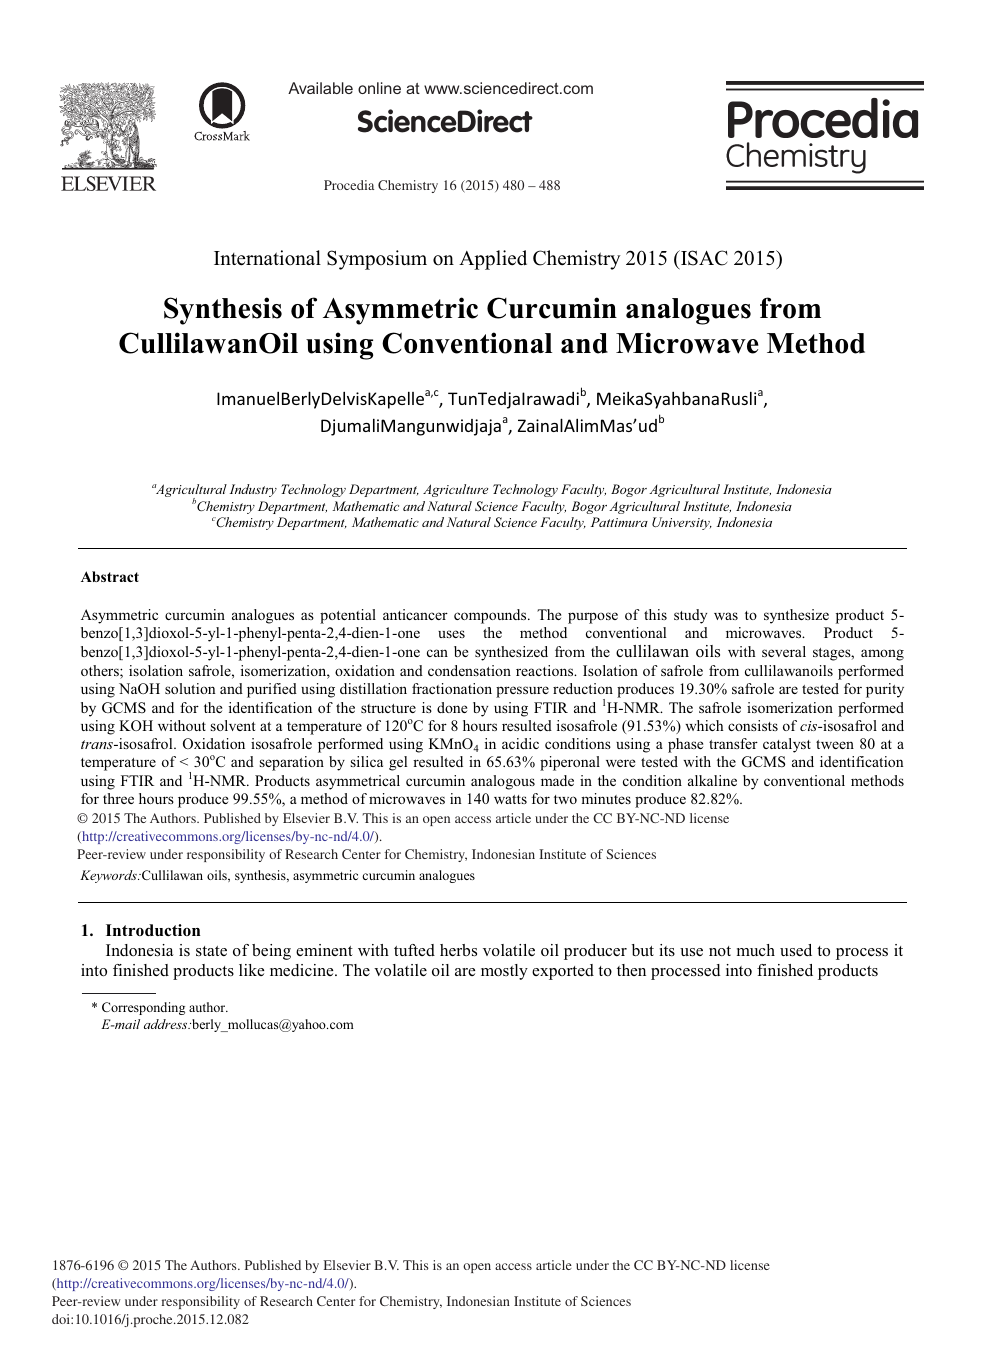 Synthesis of Asymmetric Curcumin Analogues from CullilawanOil using